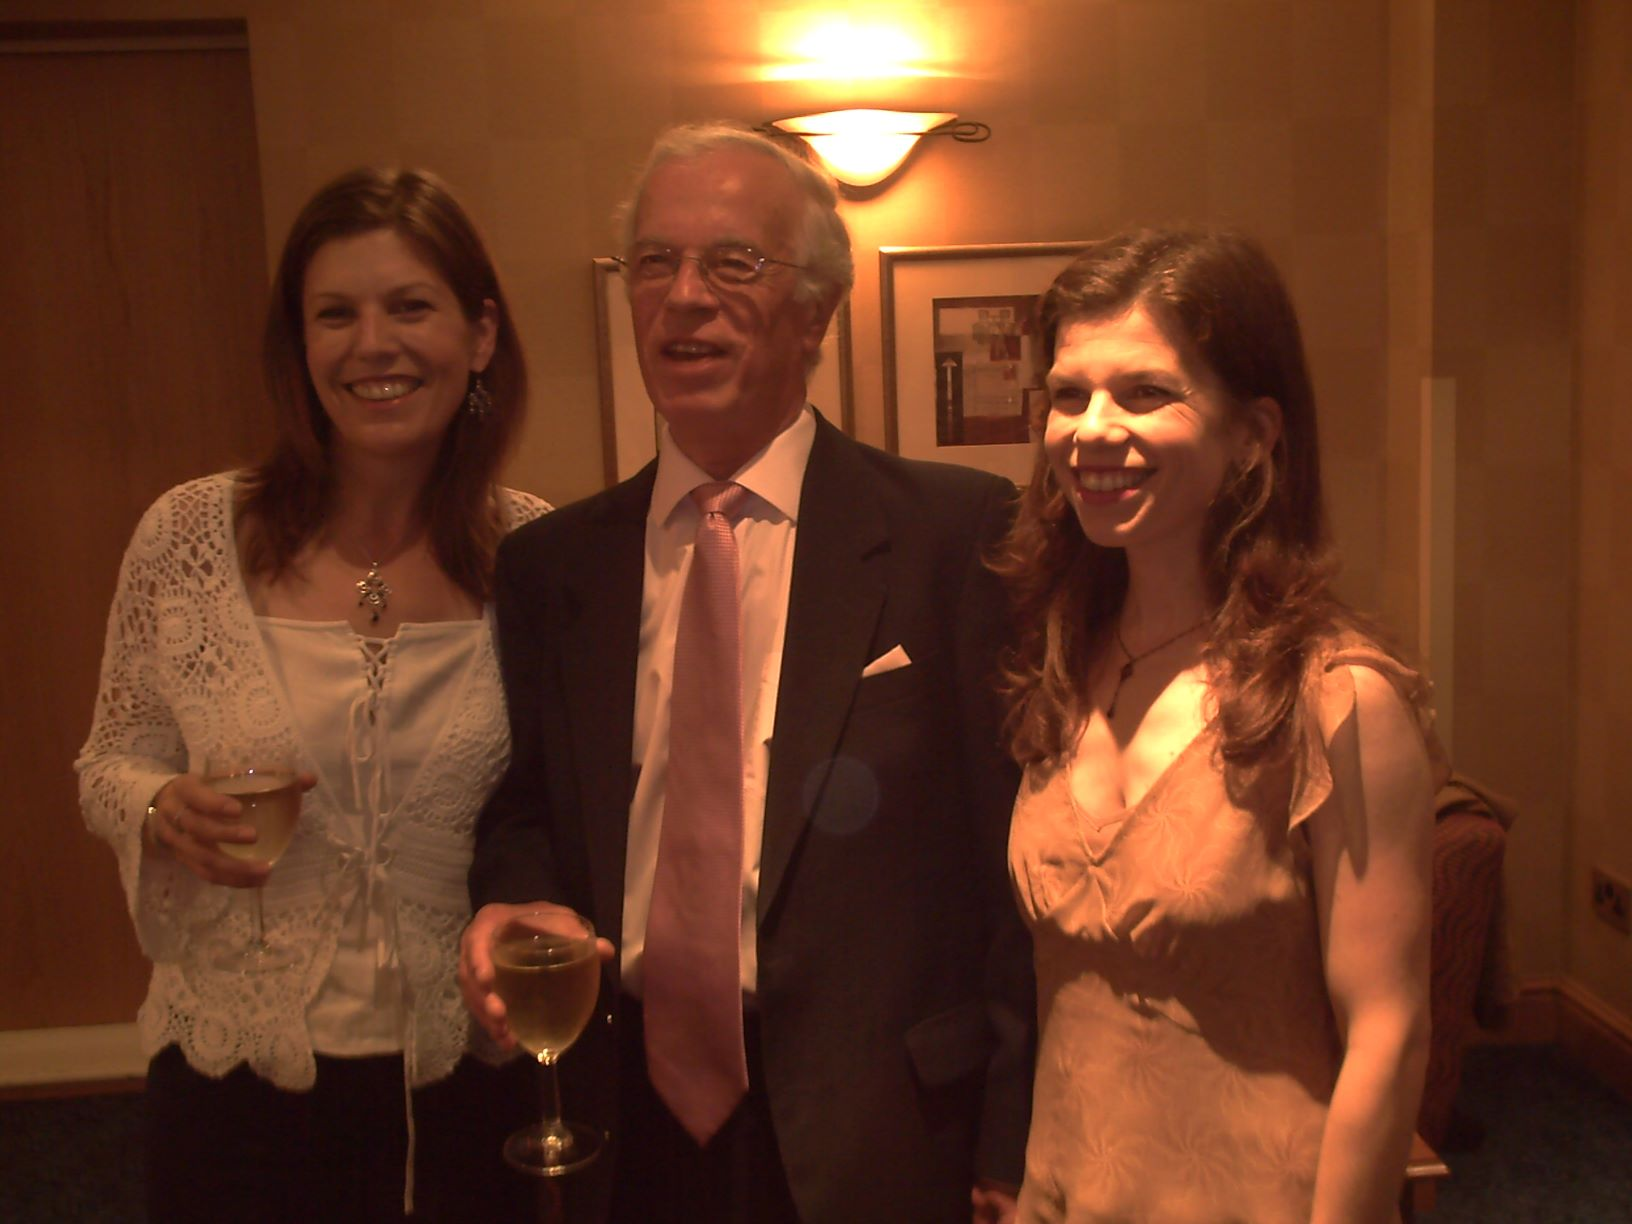 Peter Henson at his silver wedding anniversary, flanked by his two daughters, Mary and Sarah